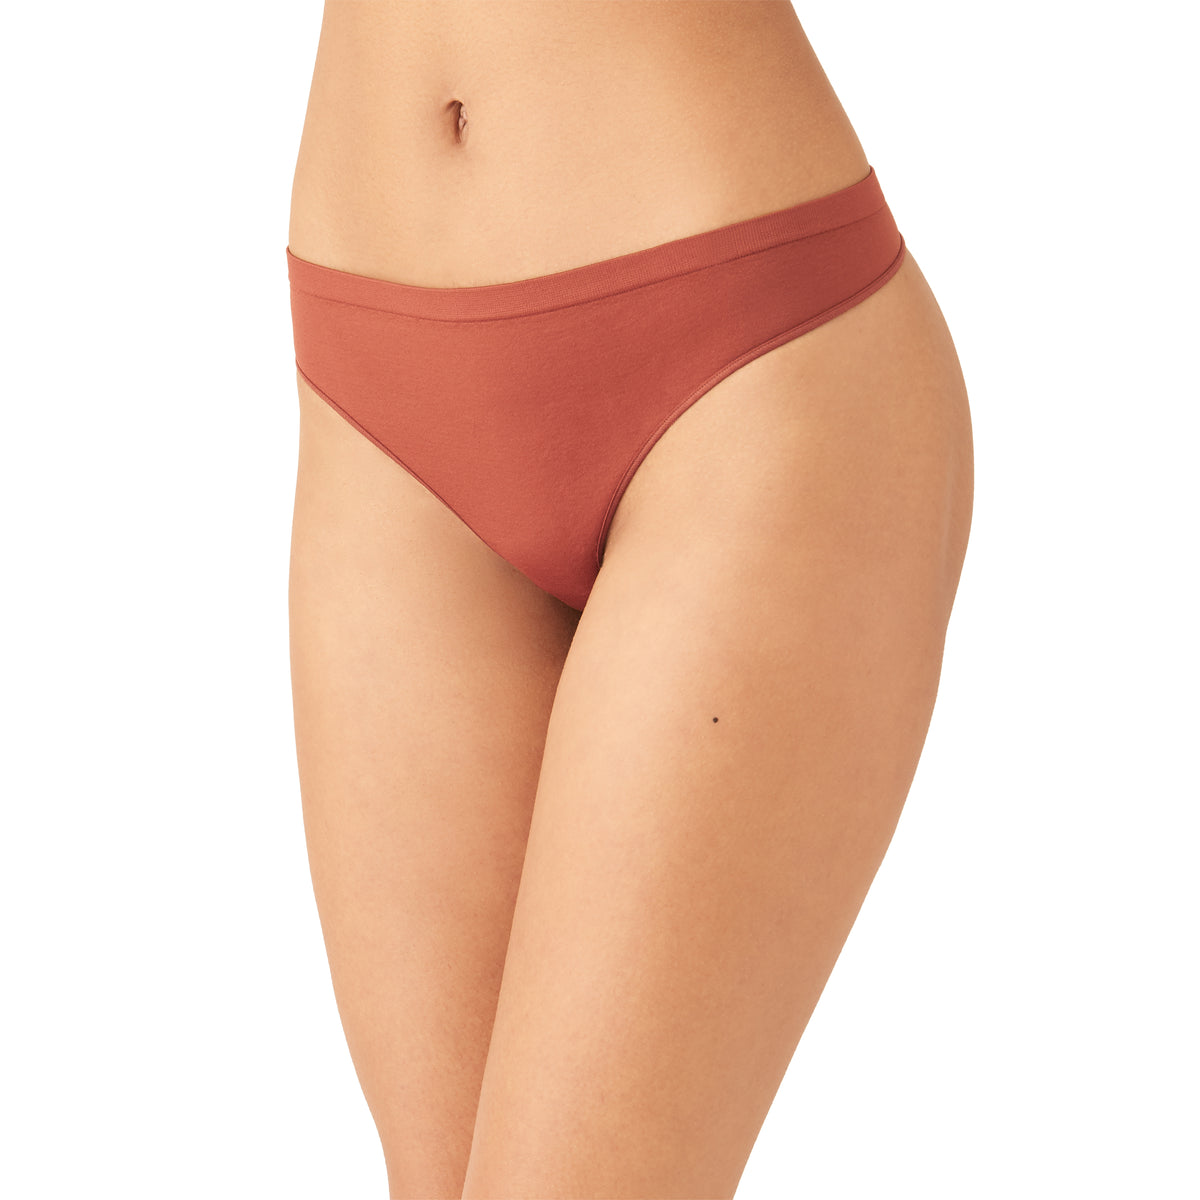 979240 Comfort Intended Thong |MARSALA| (503)